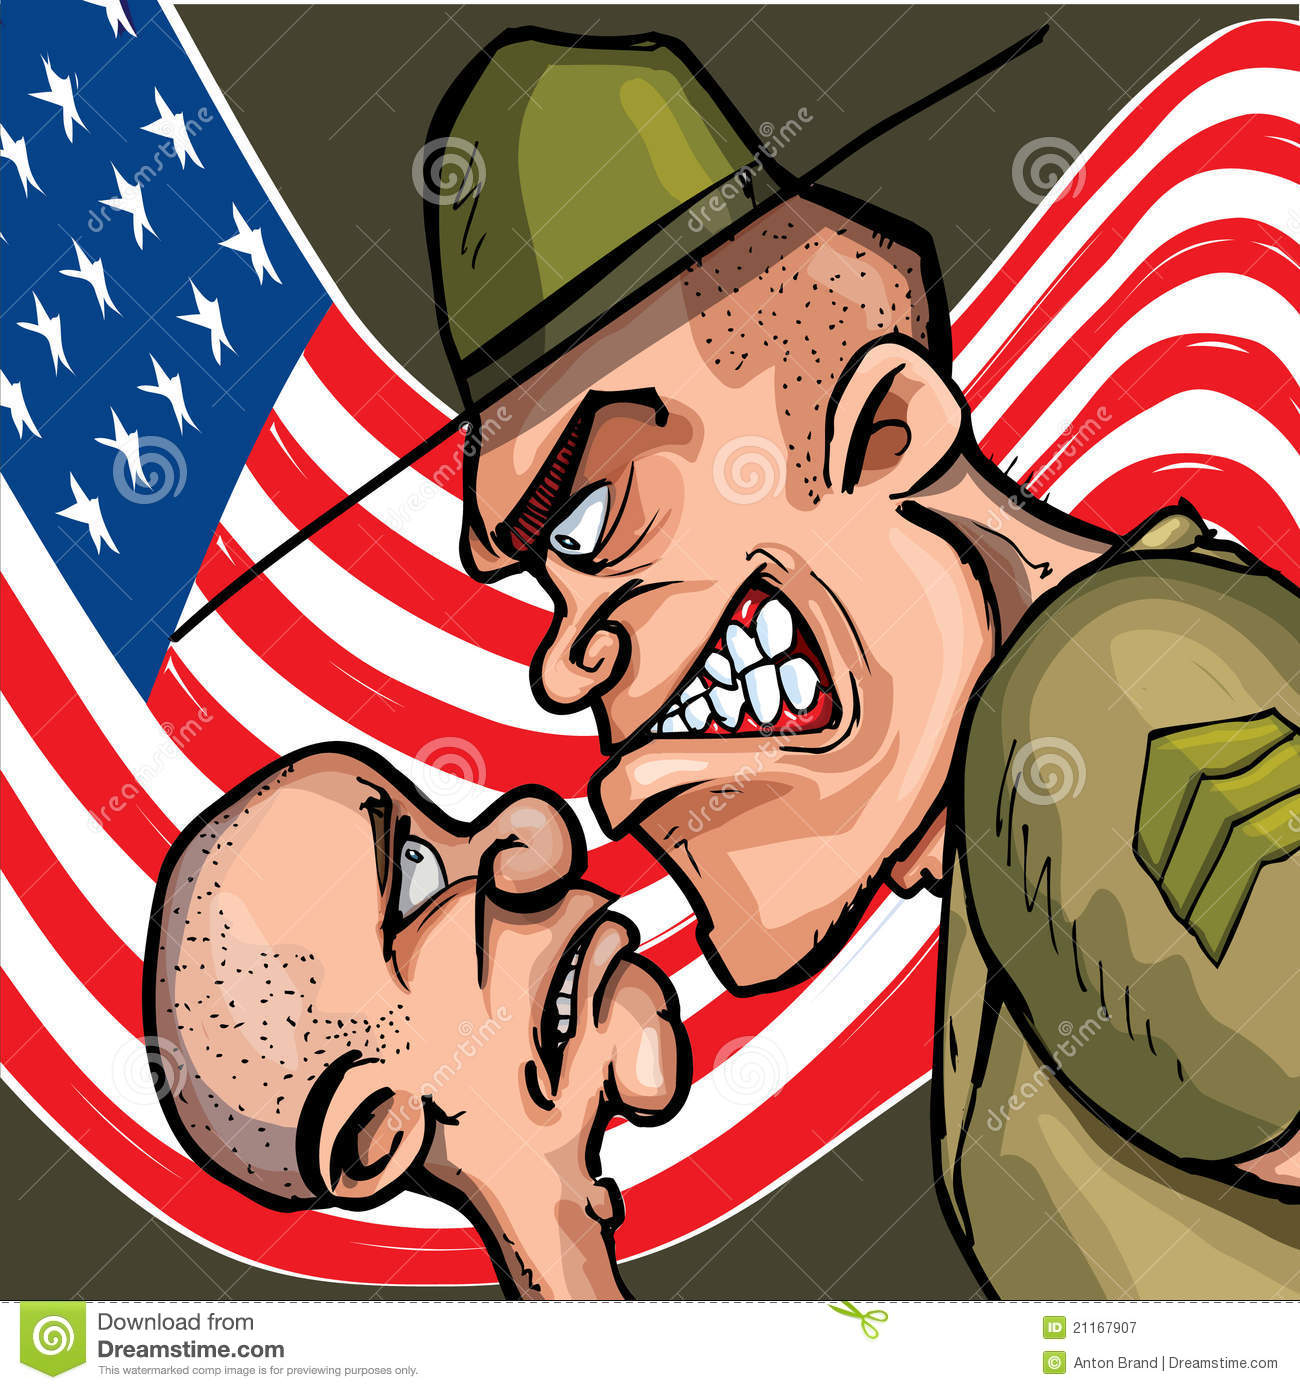 999x555 151kb Jpeg: The Gallery For --> Drill Sergeant Yelling Clip Art